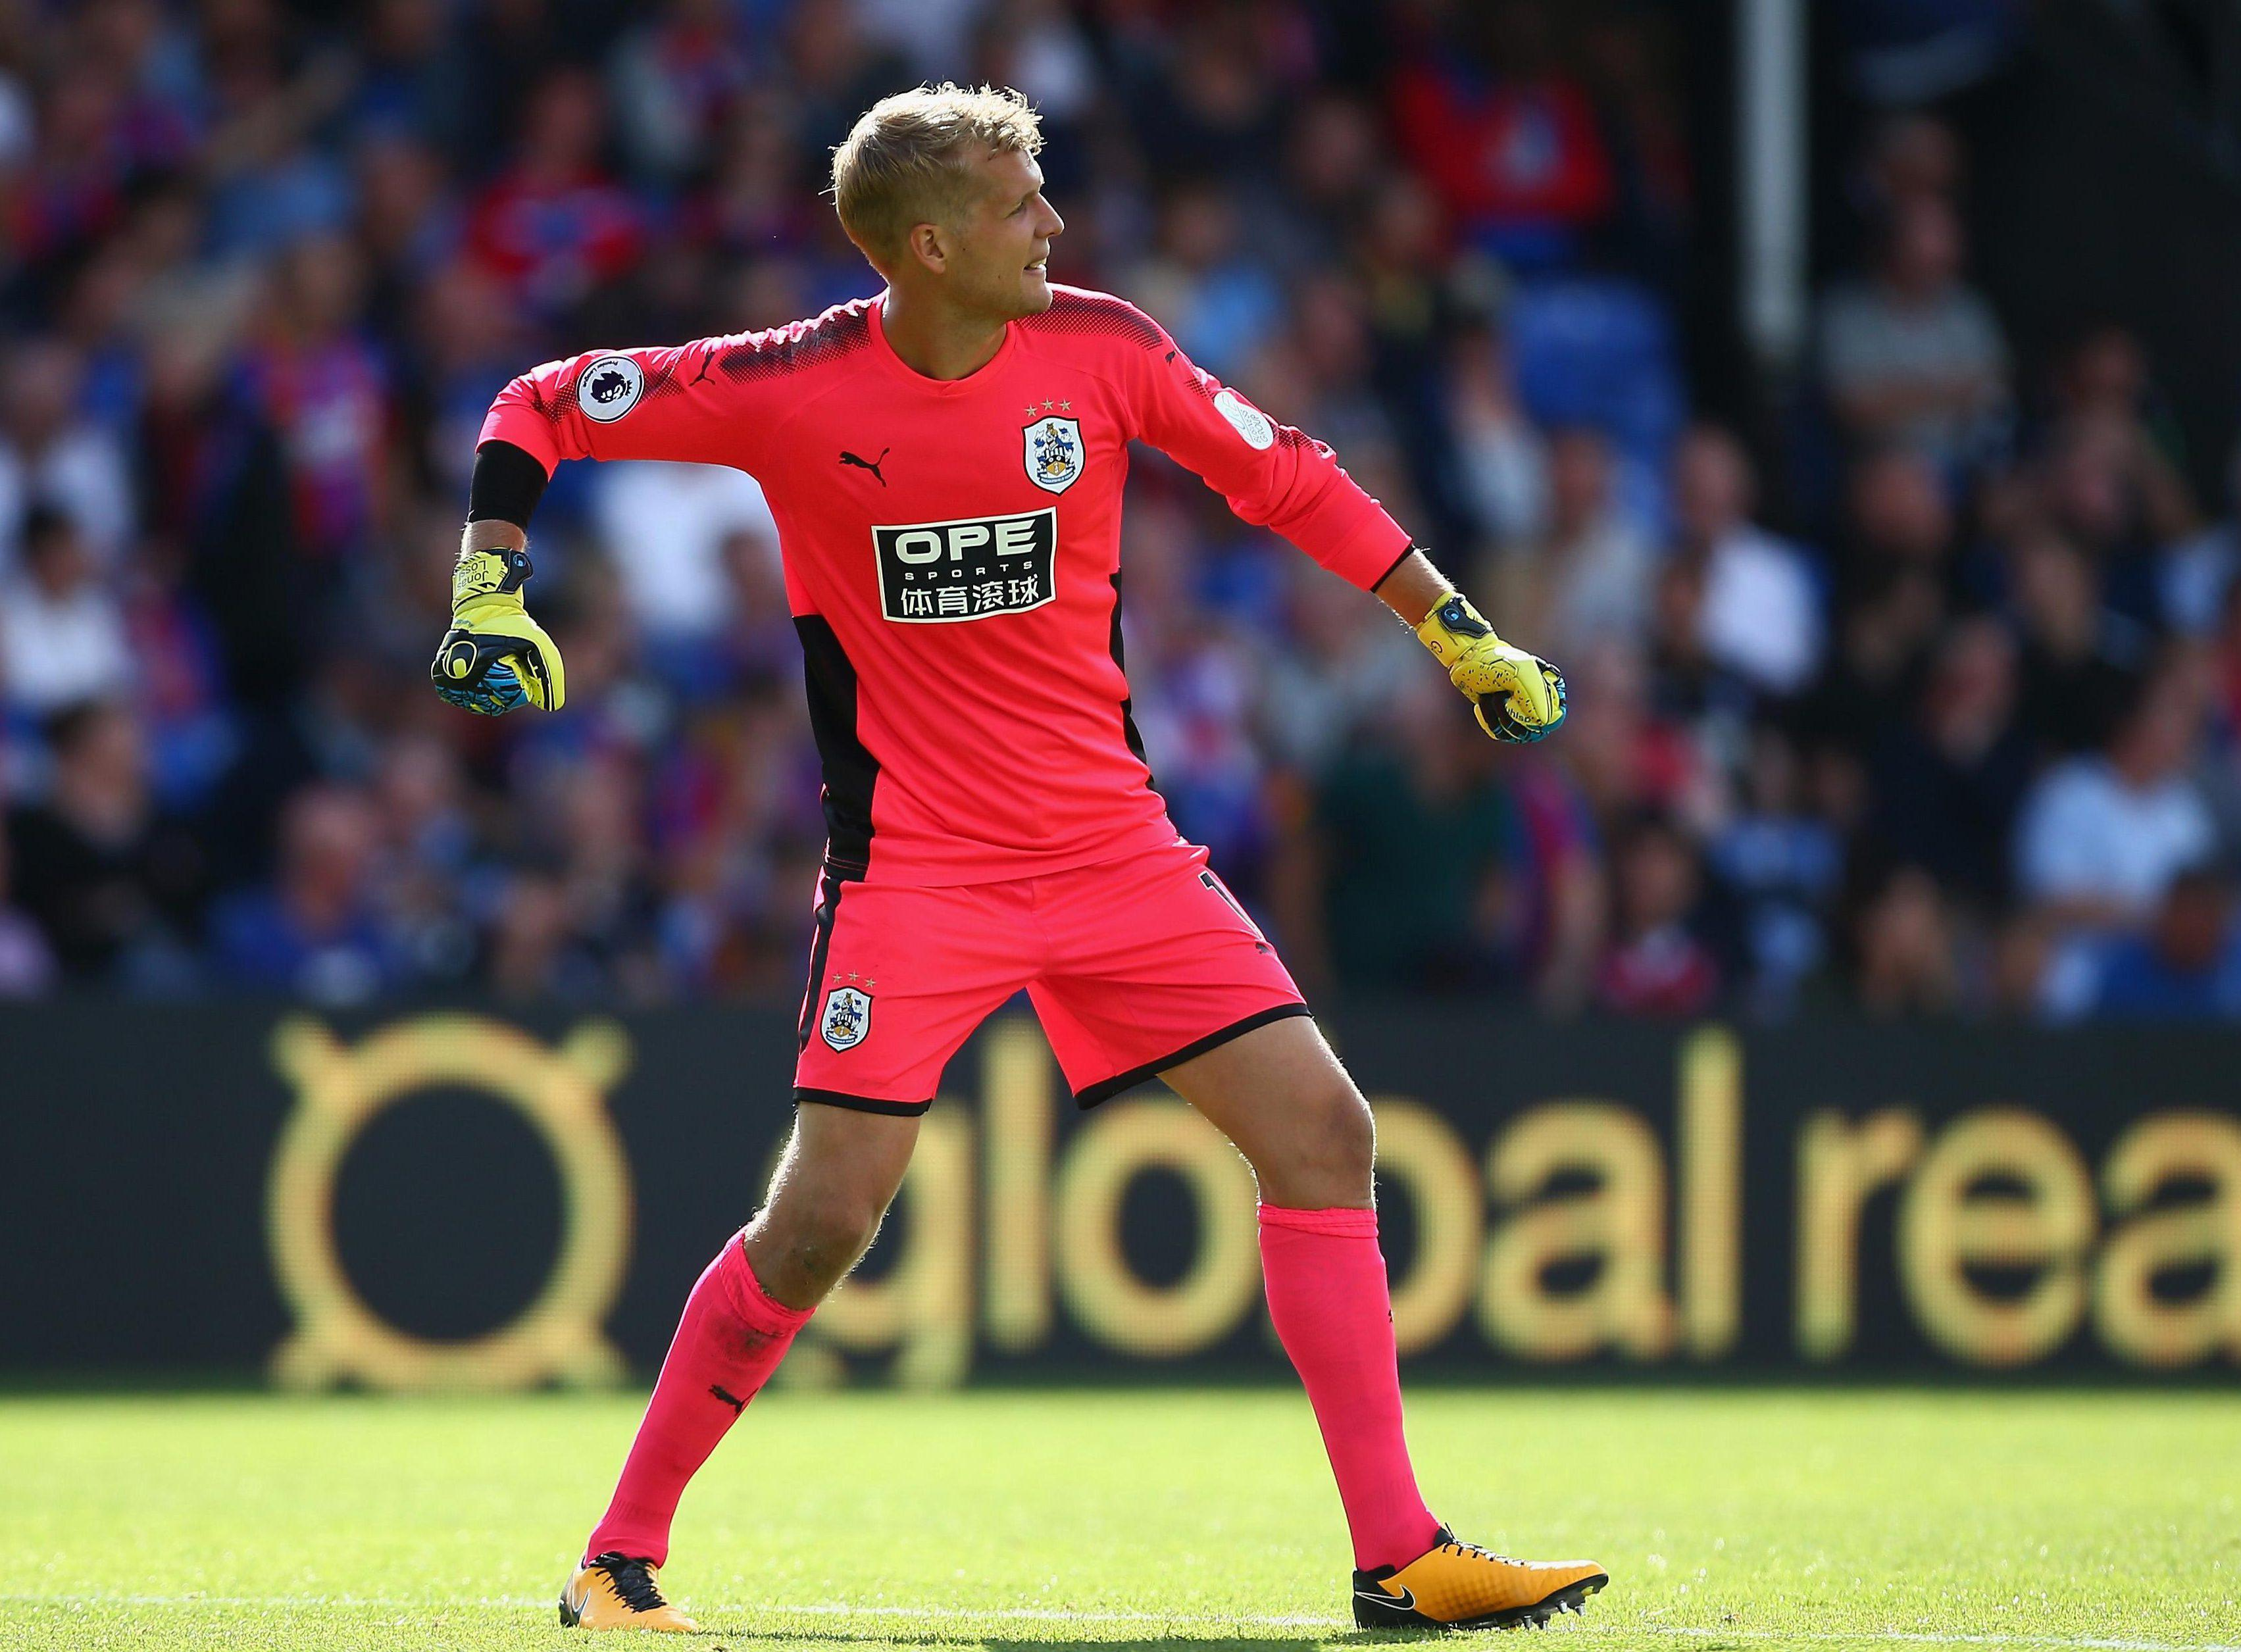 Lossl has impressed between the sticks for Huddersfield so far this season